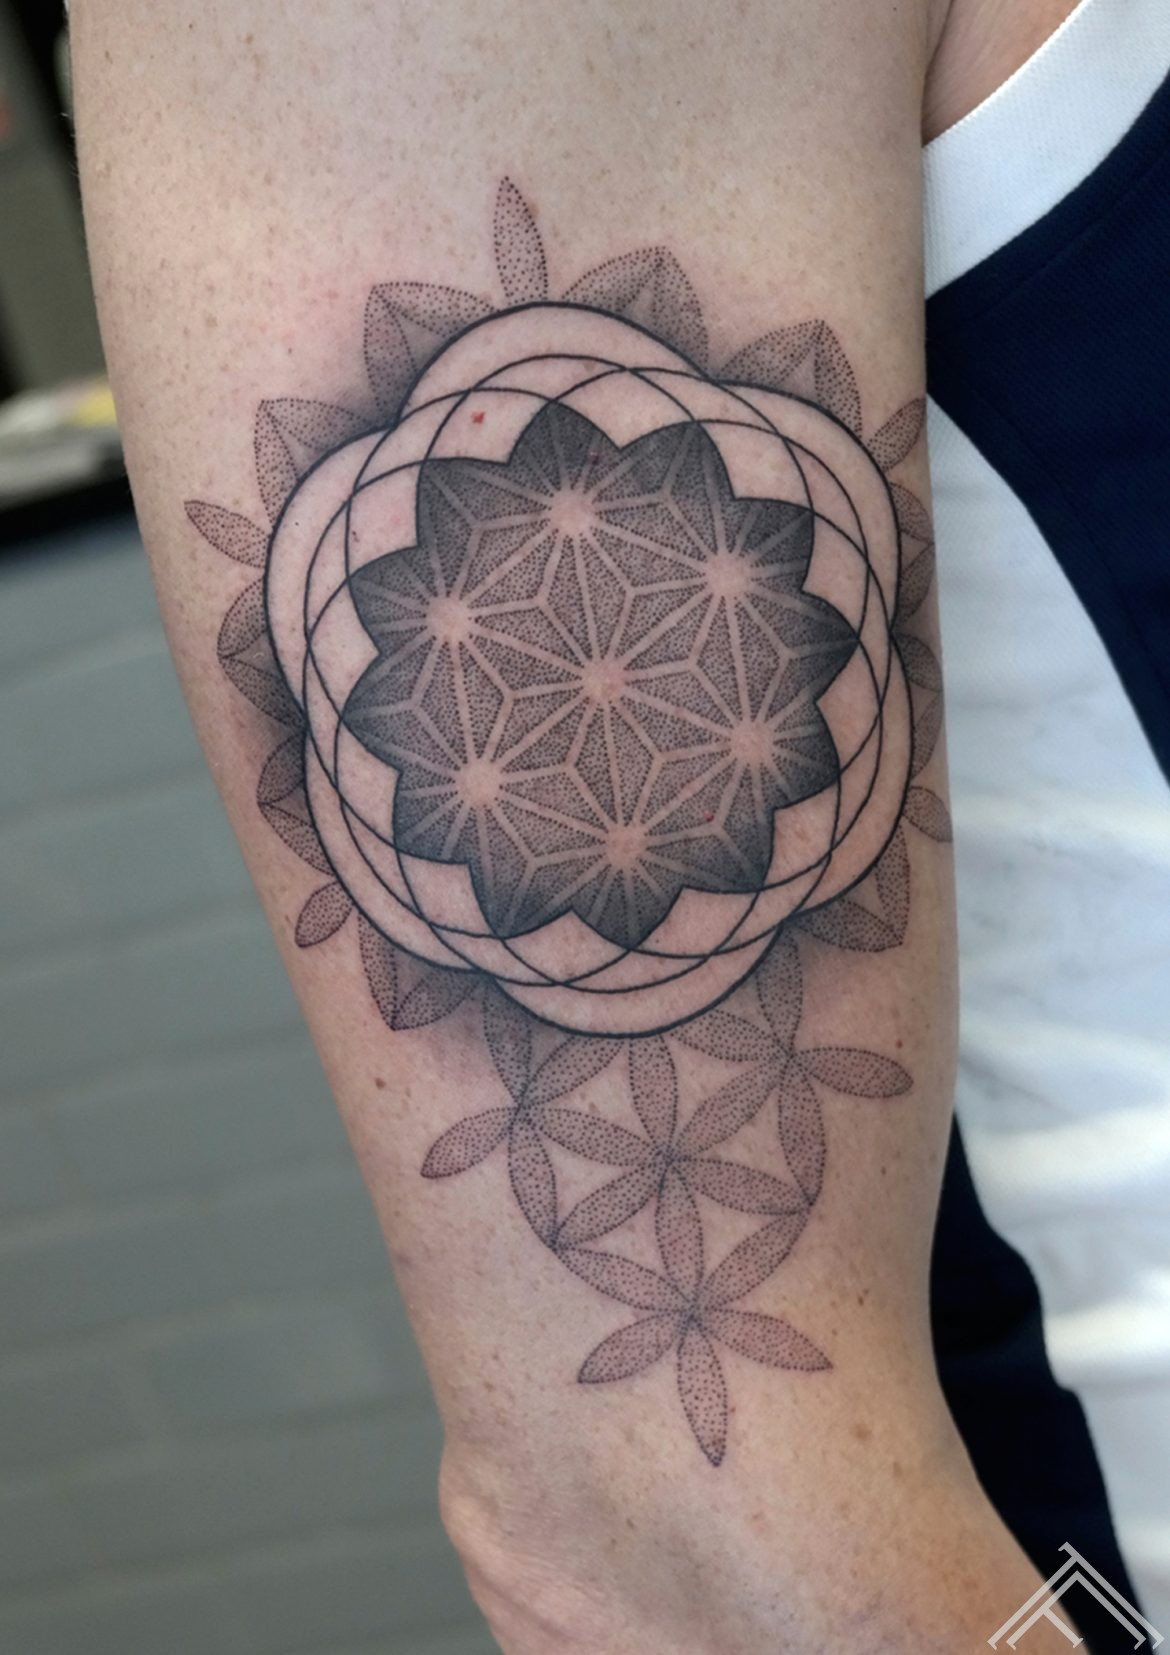 flower-flowerofthelife-life-tattoo-zieds-geometric-tattoofrequency-tetovejums-riga-janissvars